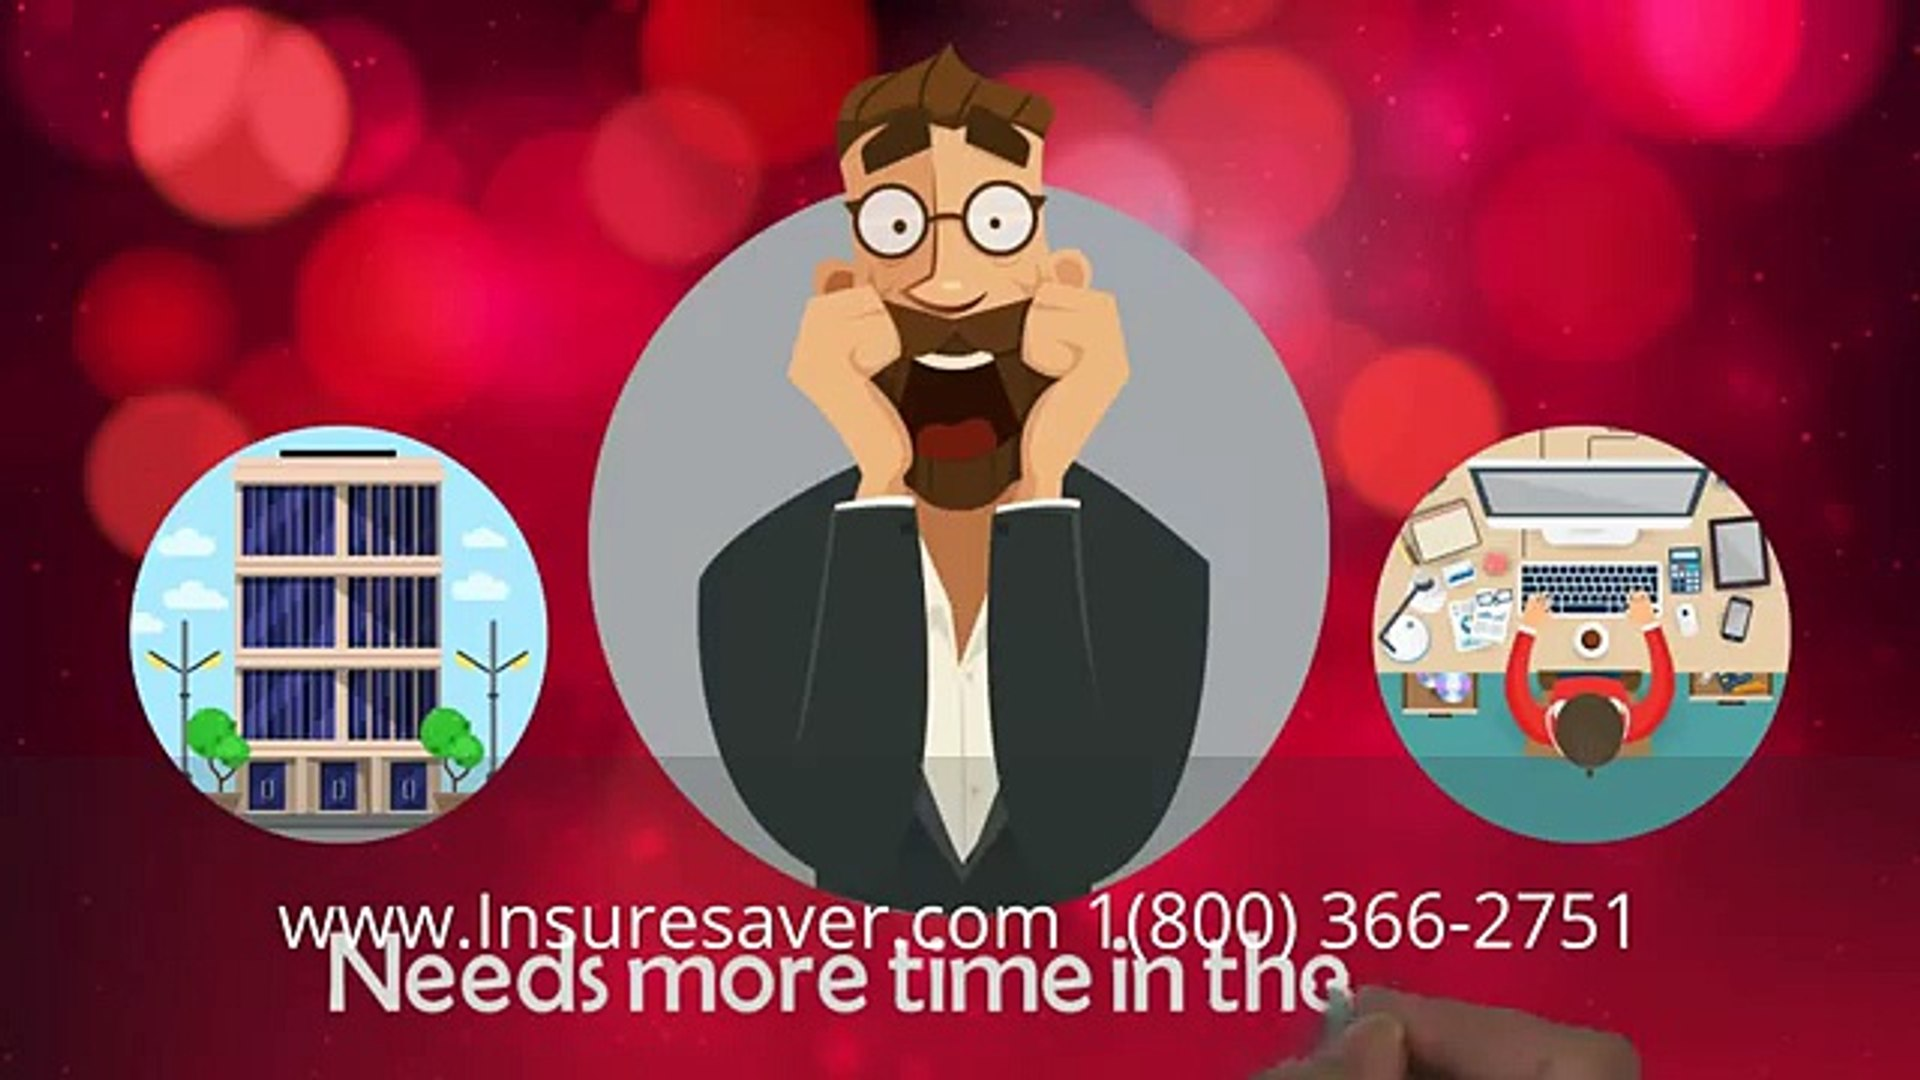 Are You Looking For Group Health Insurance in California InsureSaver Can Help!